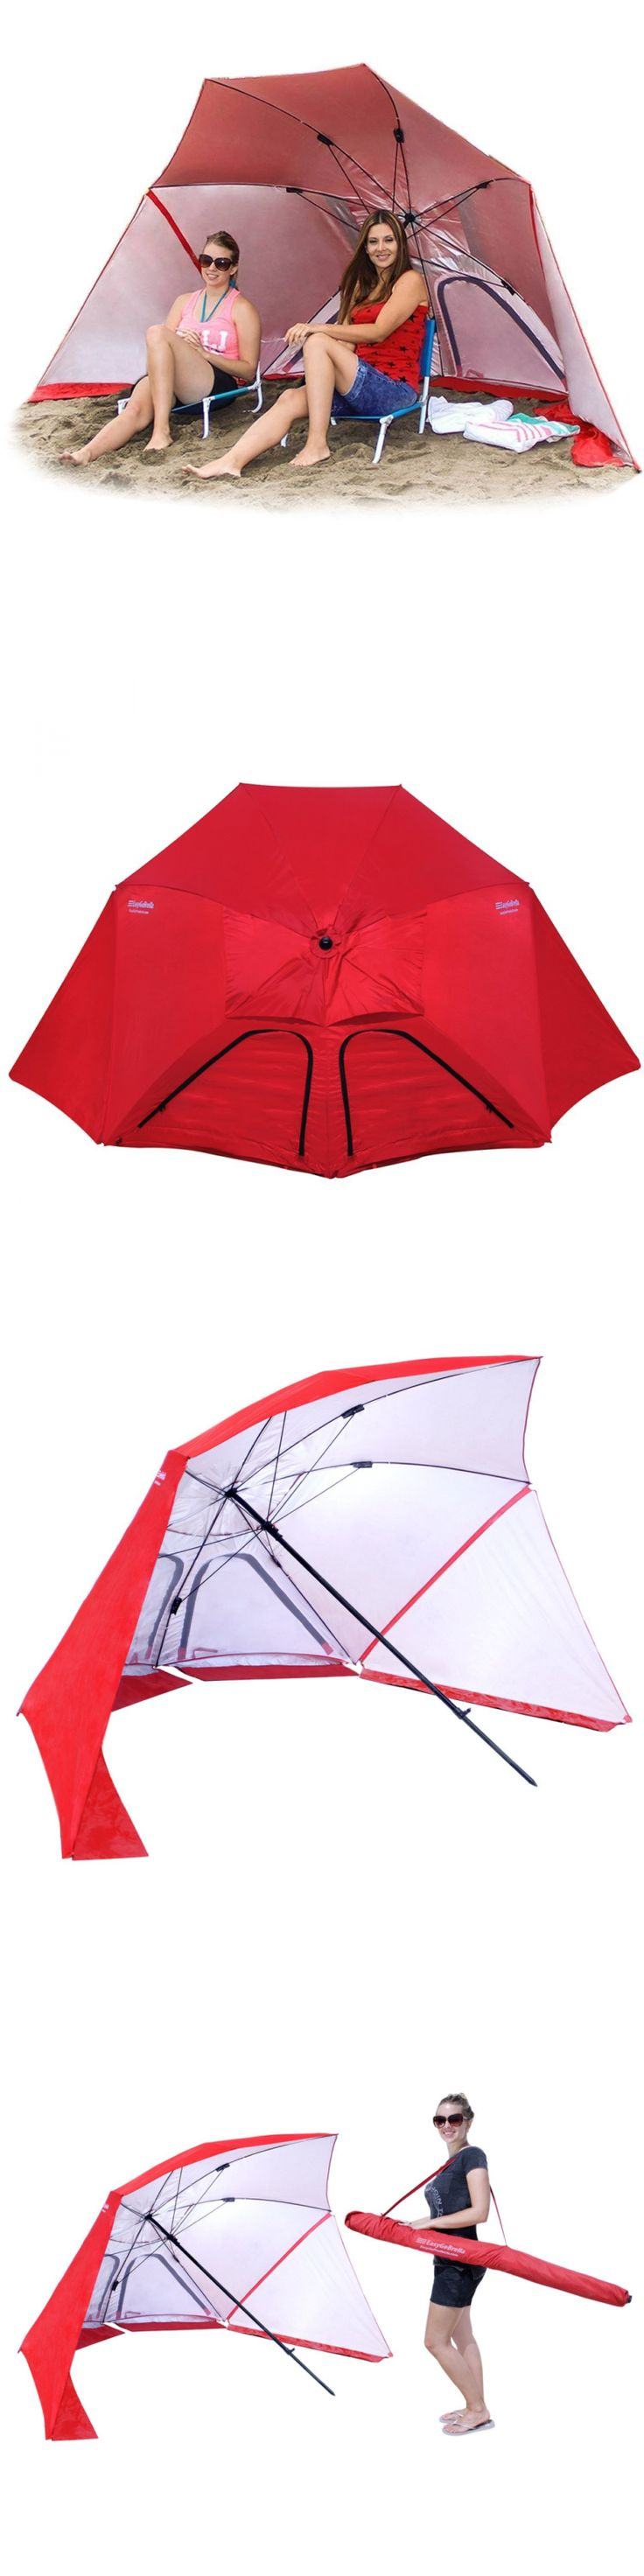 Canopies and Shelters 179011: Easygo Brella Umbrella Sun Rain Wind Shelter Beach Easy Canopy Outdoor Camping -> BUY IT NOW ONLY: $44.32 on eBay!